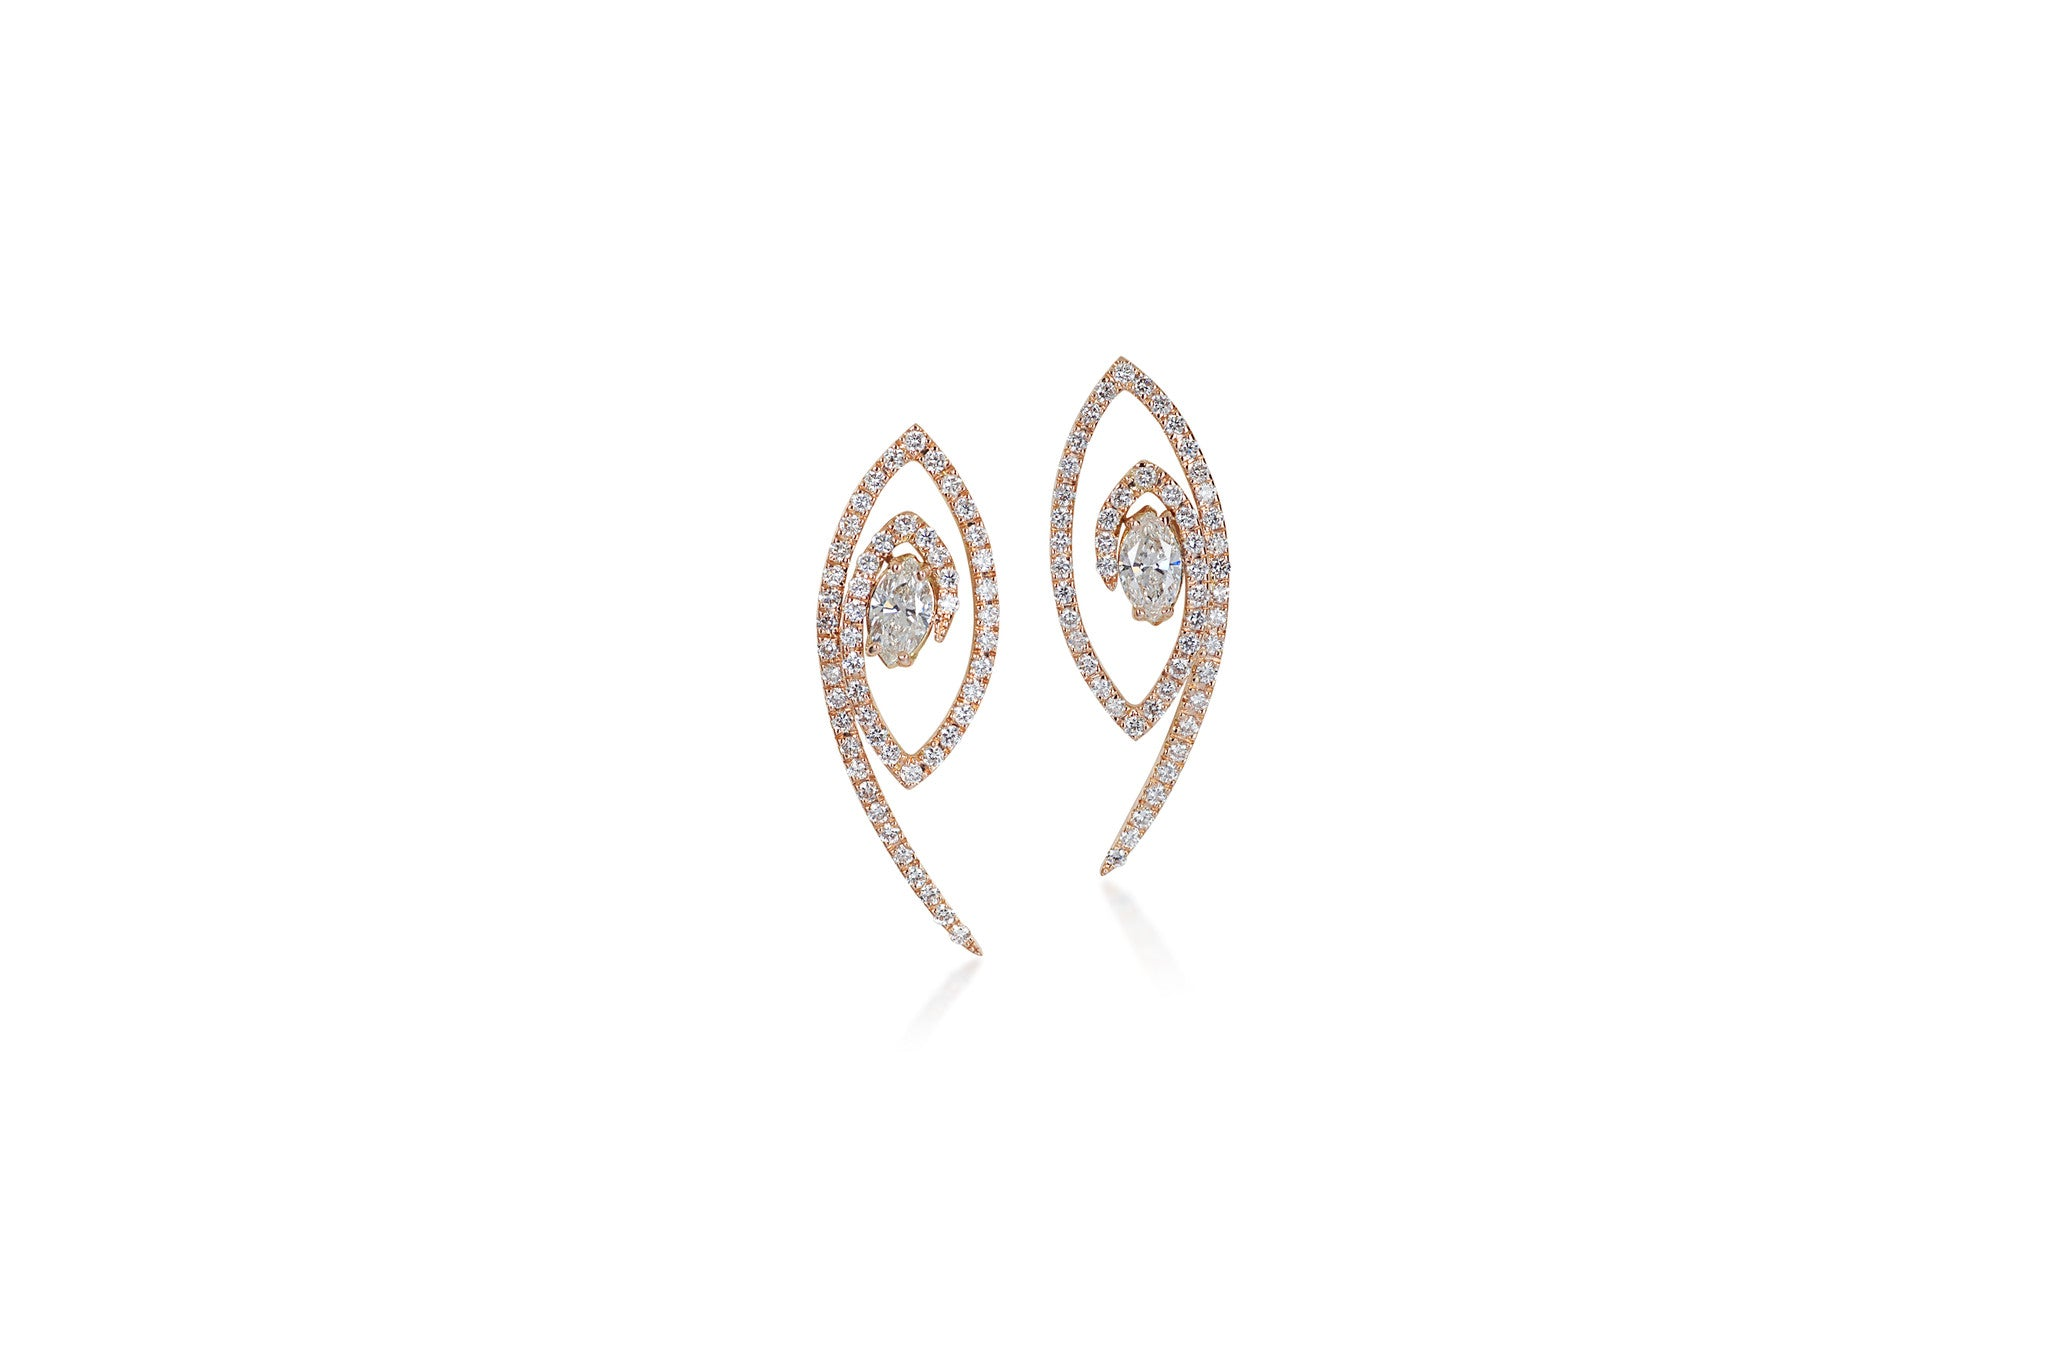 Talisman: The Eye Rose Gold Diamond Earrings